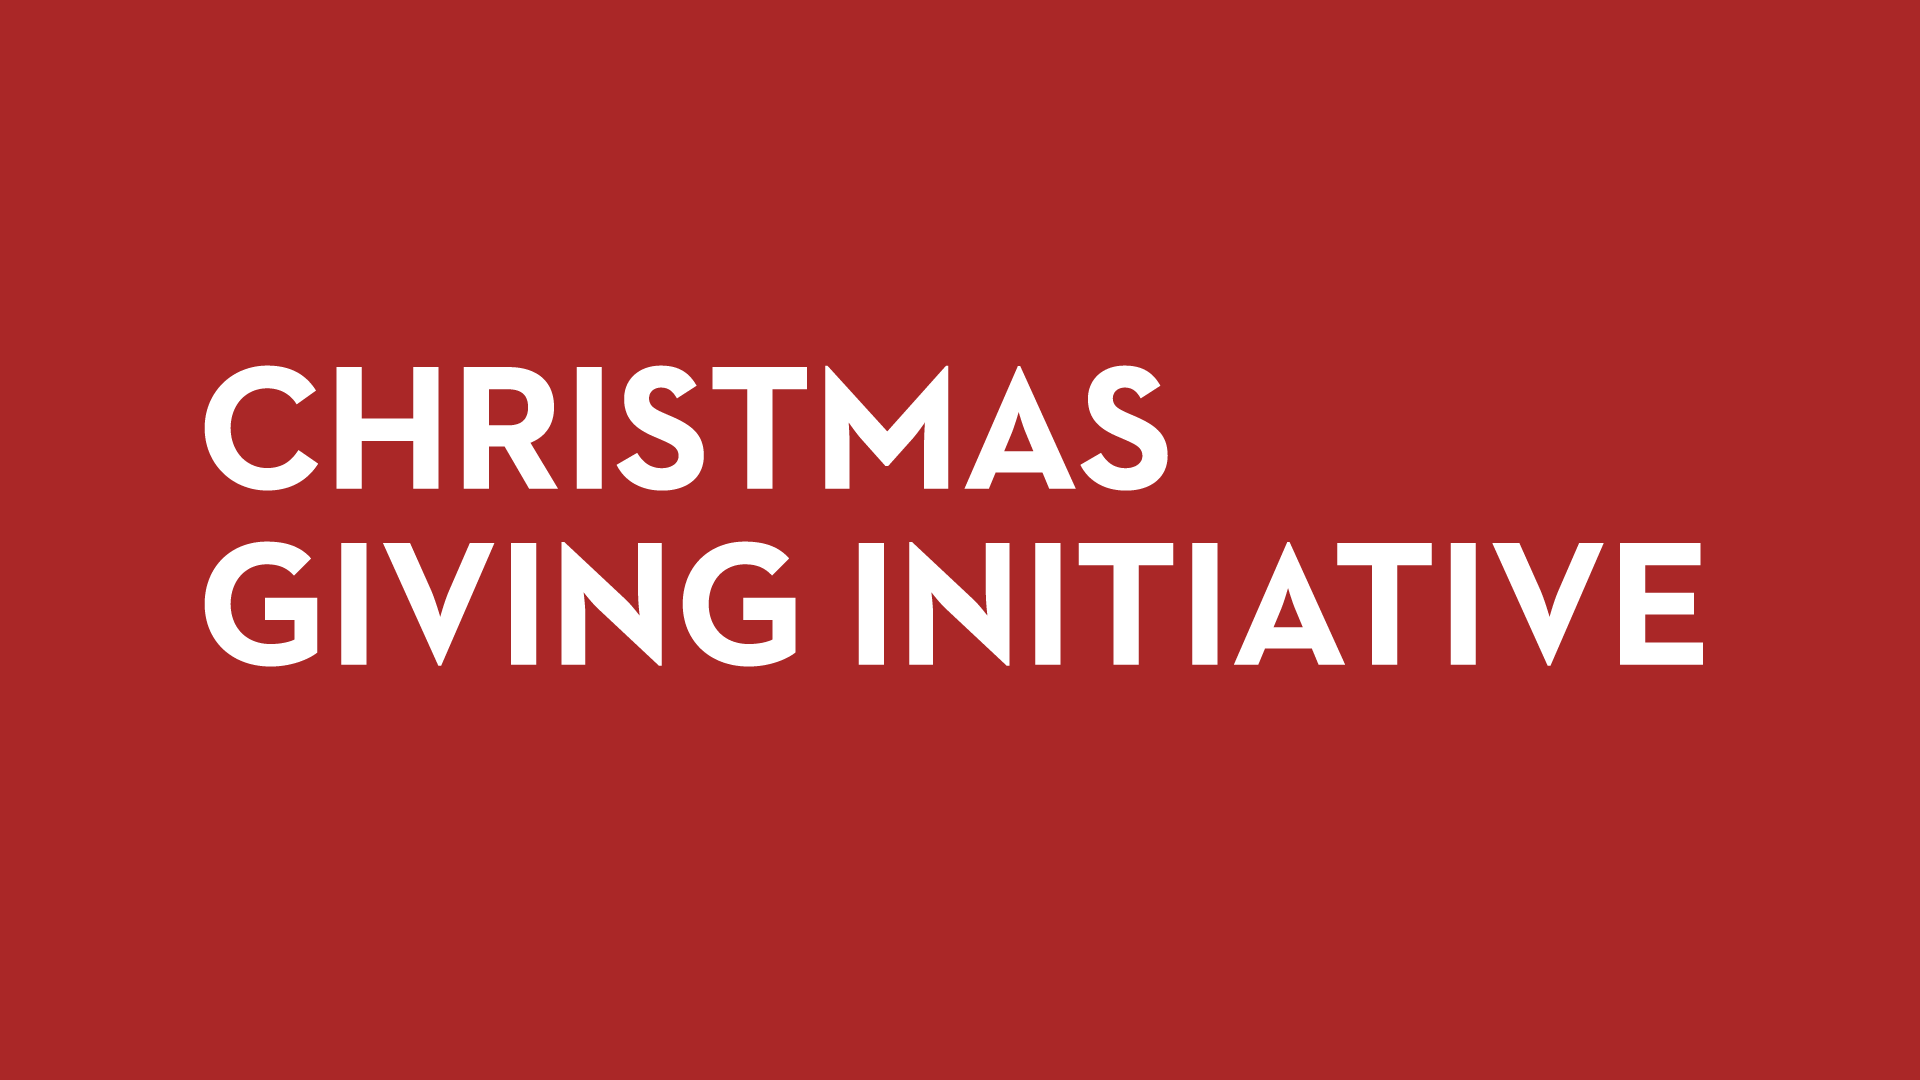 The Well's Christmas Giving Initiative    November 26th, 2017